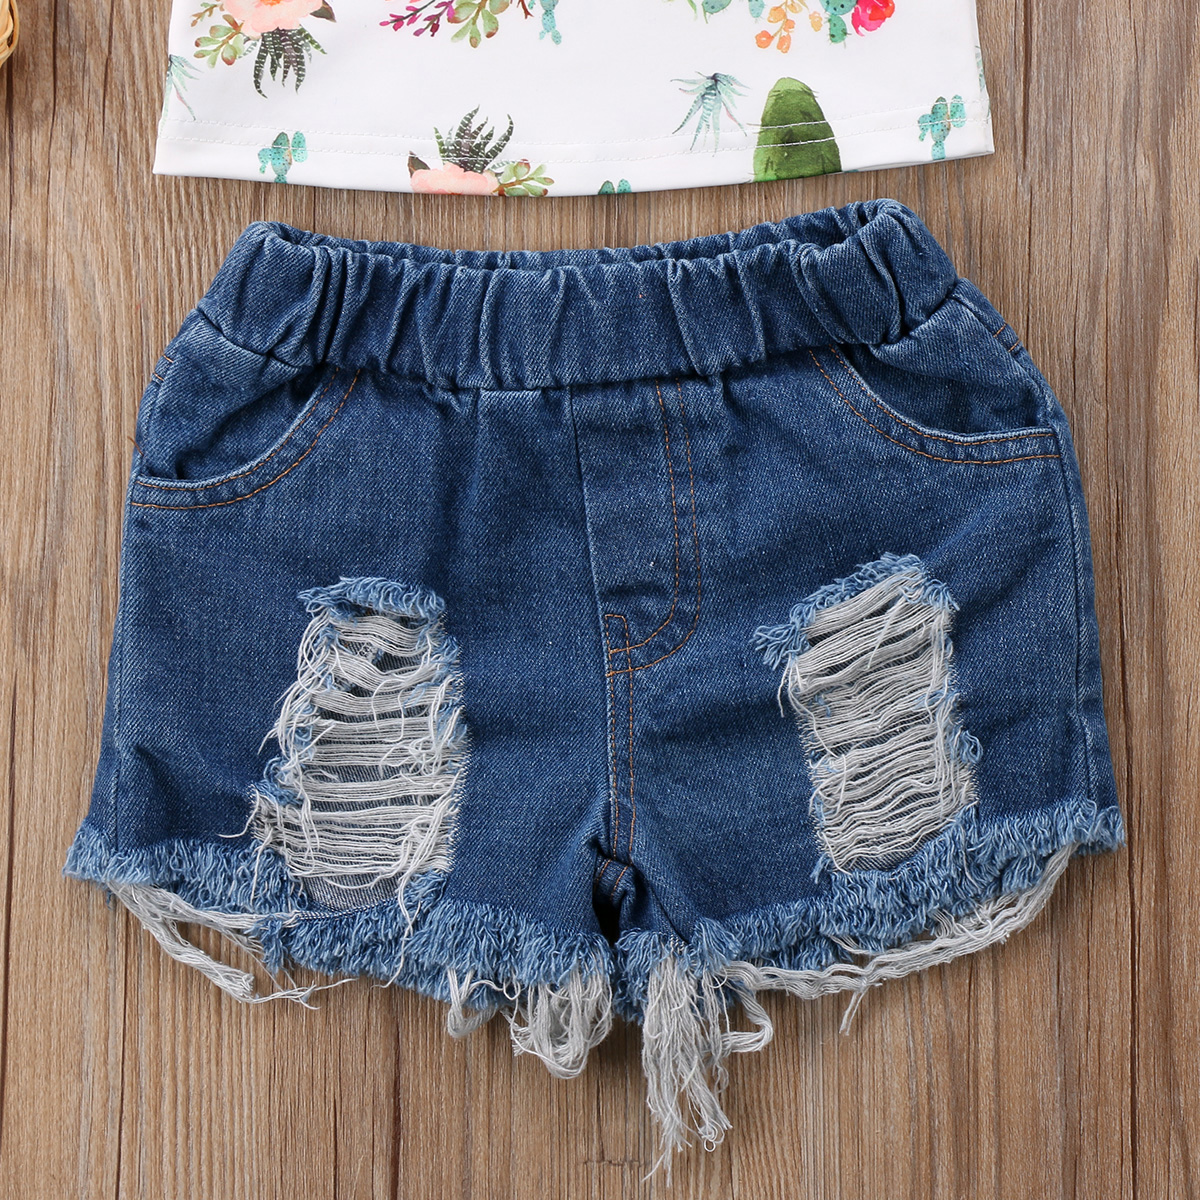 d58ef2678 Baby Girls cactus Clothes Set Toddler Kids Tops T shirt Ripped Denim Shorts  Outfits Set-in Clothing Sets from Mother & Kids on Aliexpress.com | Alibaba  ...